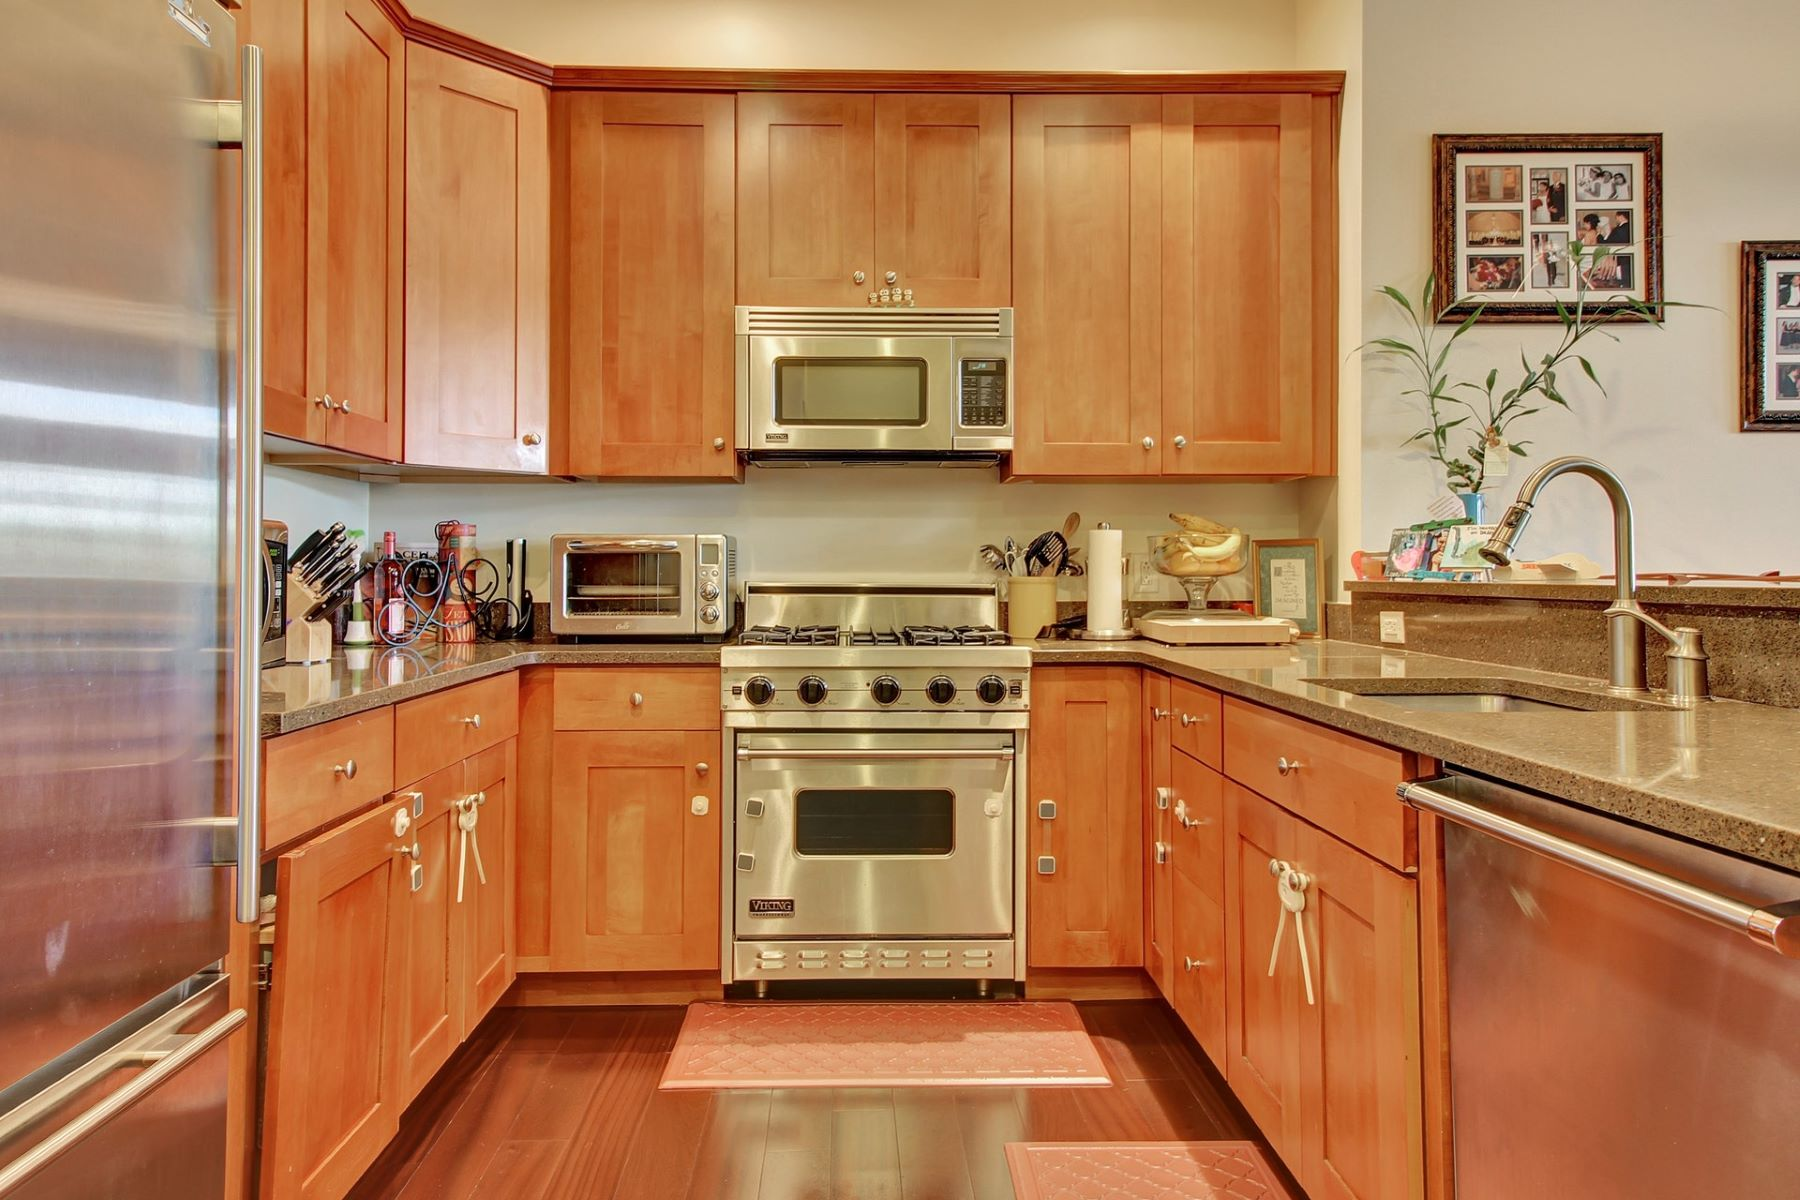 Condominium for Sale at Owner VERY motivated, BEST PRICED 2 Bedroom + Den/2 Bath Condo 7400 River RD #108, North Bergen, New Jersey 07047 United States